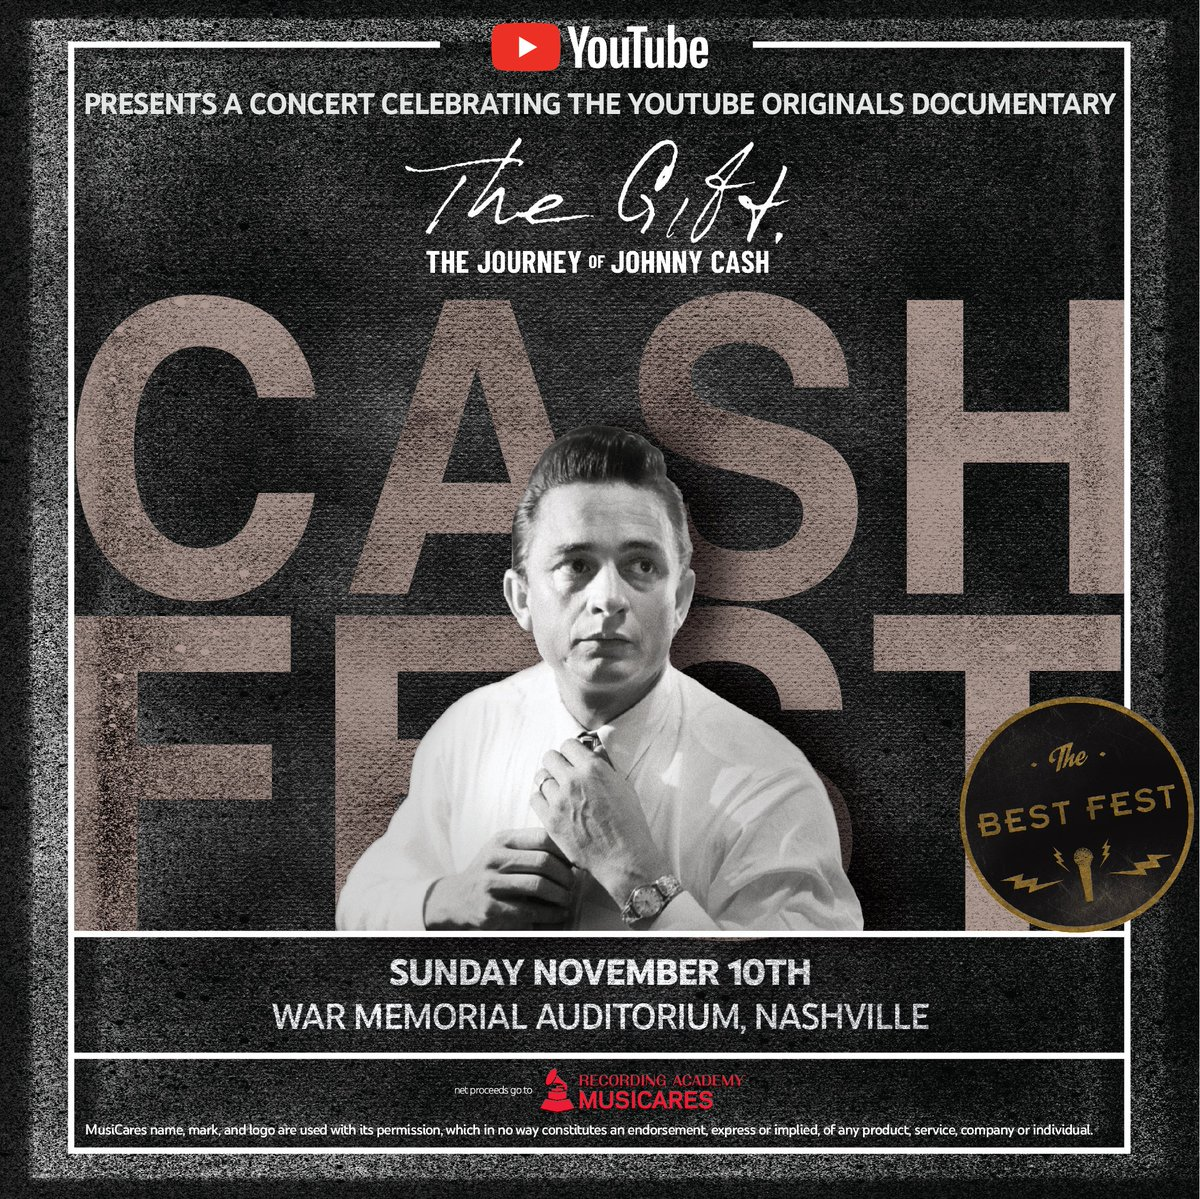 Excited to perform at #CashFest in Nashville to celebrate the premiere of @YouTube's The Gift: The Journey of @JohnnyCash 🎸 Tickets are available now → http://bit.ly/cashfest  #JohnnyCashTheGift